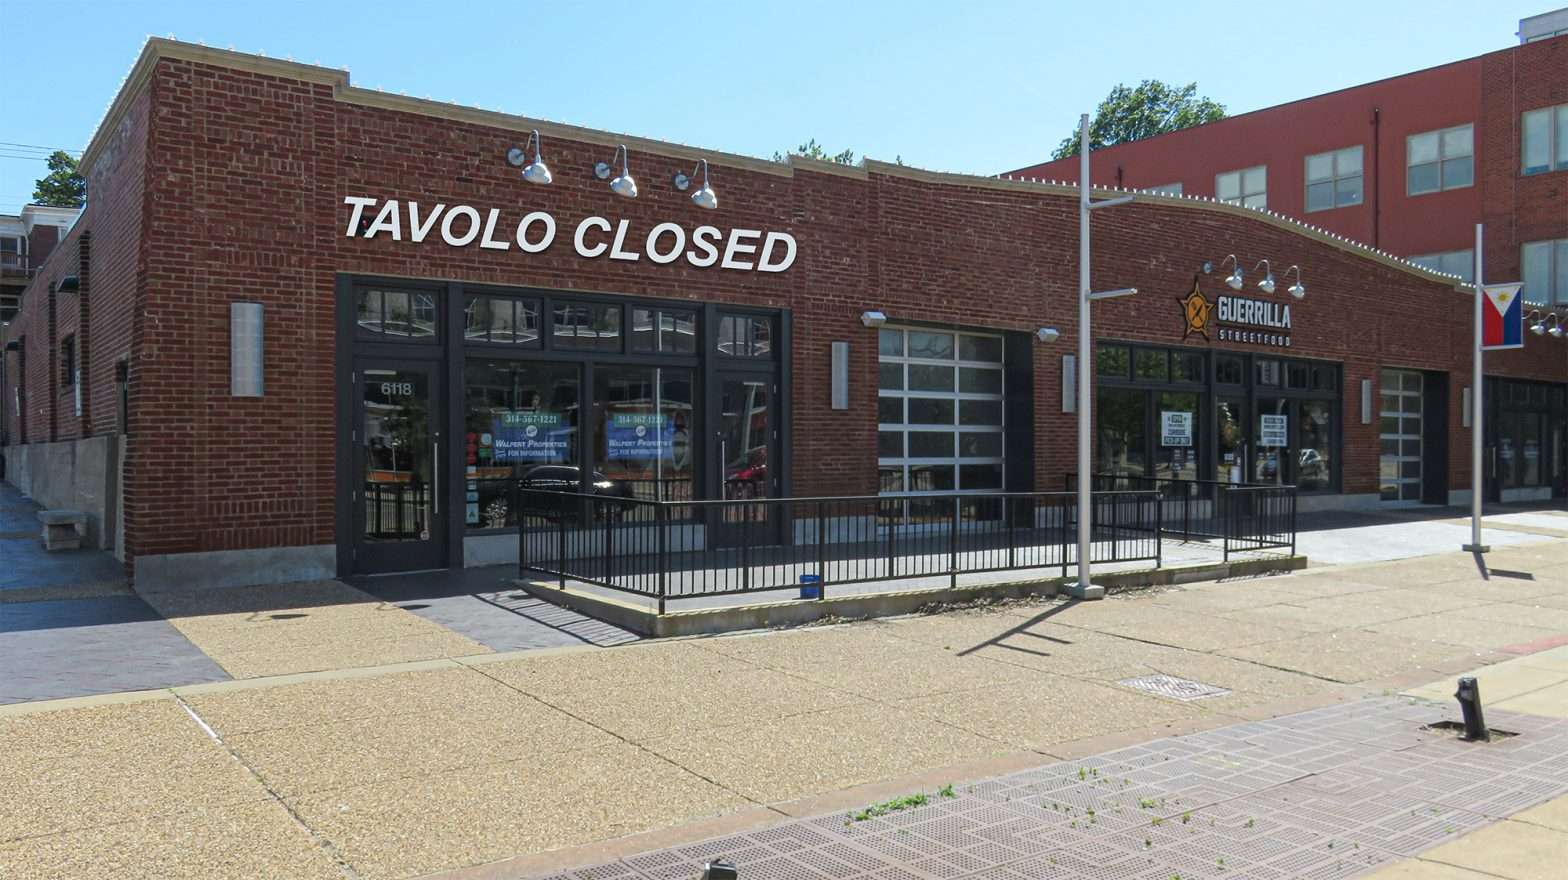 TAVOLO V Italian Restaurants cl;osed its doors permanently April 2020 on The Delmar Loop due to the Pandemic. (photo Craig Currie on June 1, 2020.